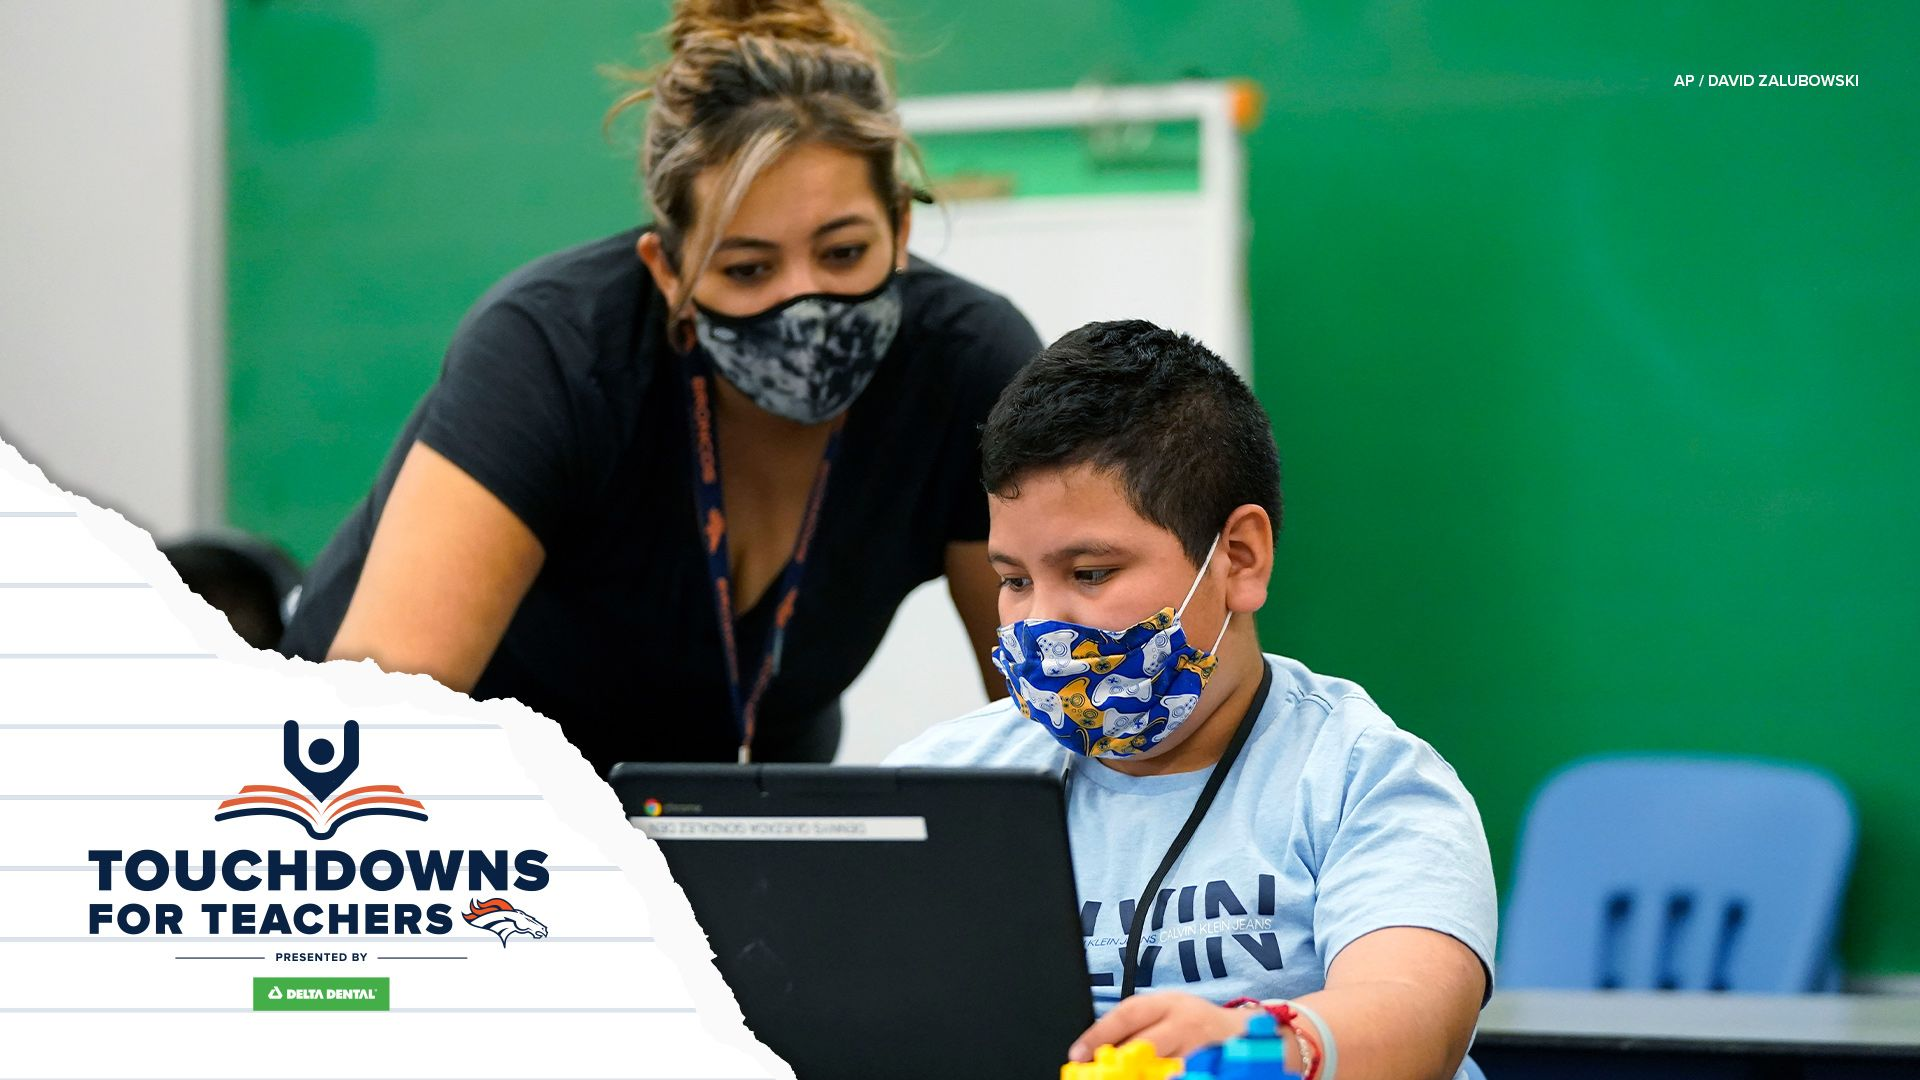 Touchdown for Teachers promo image of a teacher working with a student